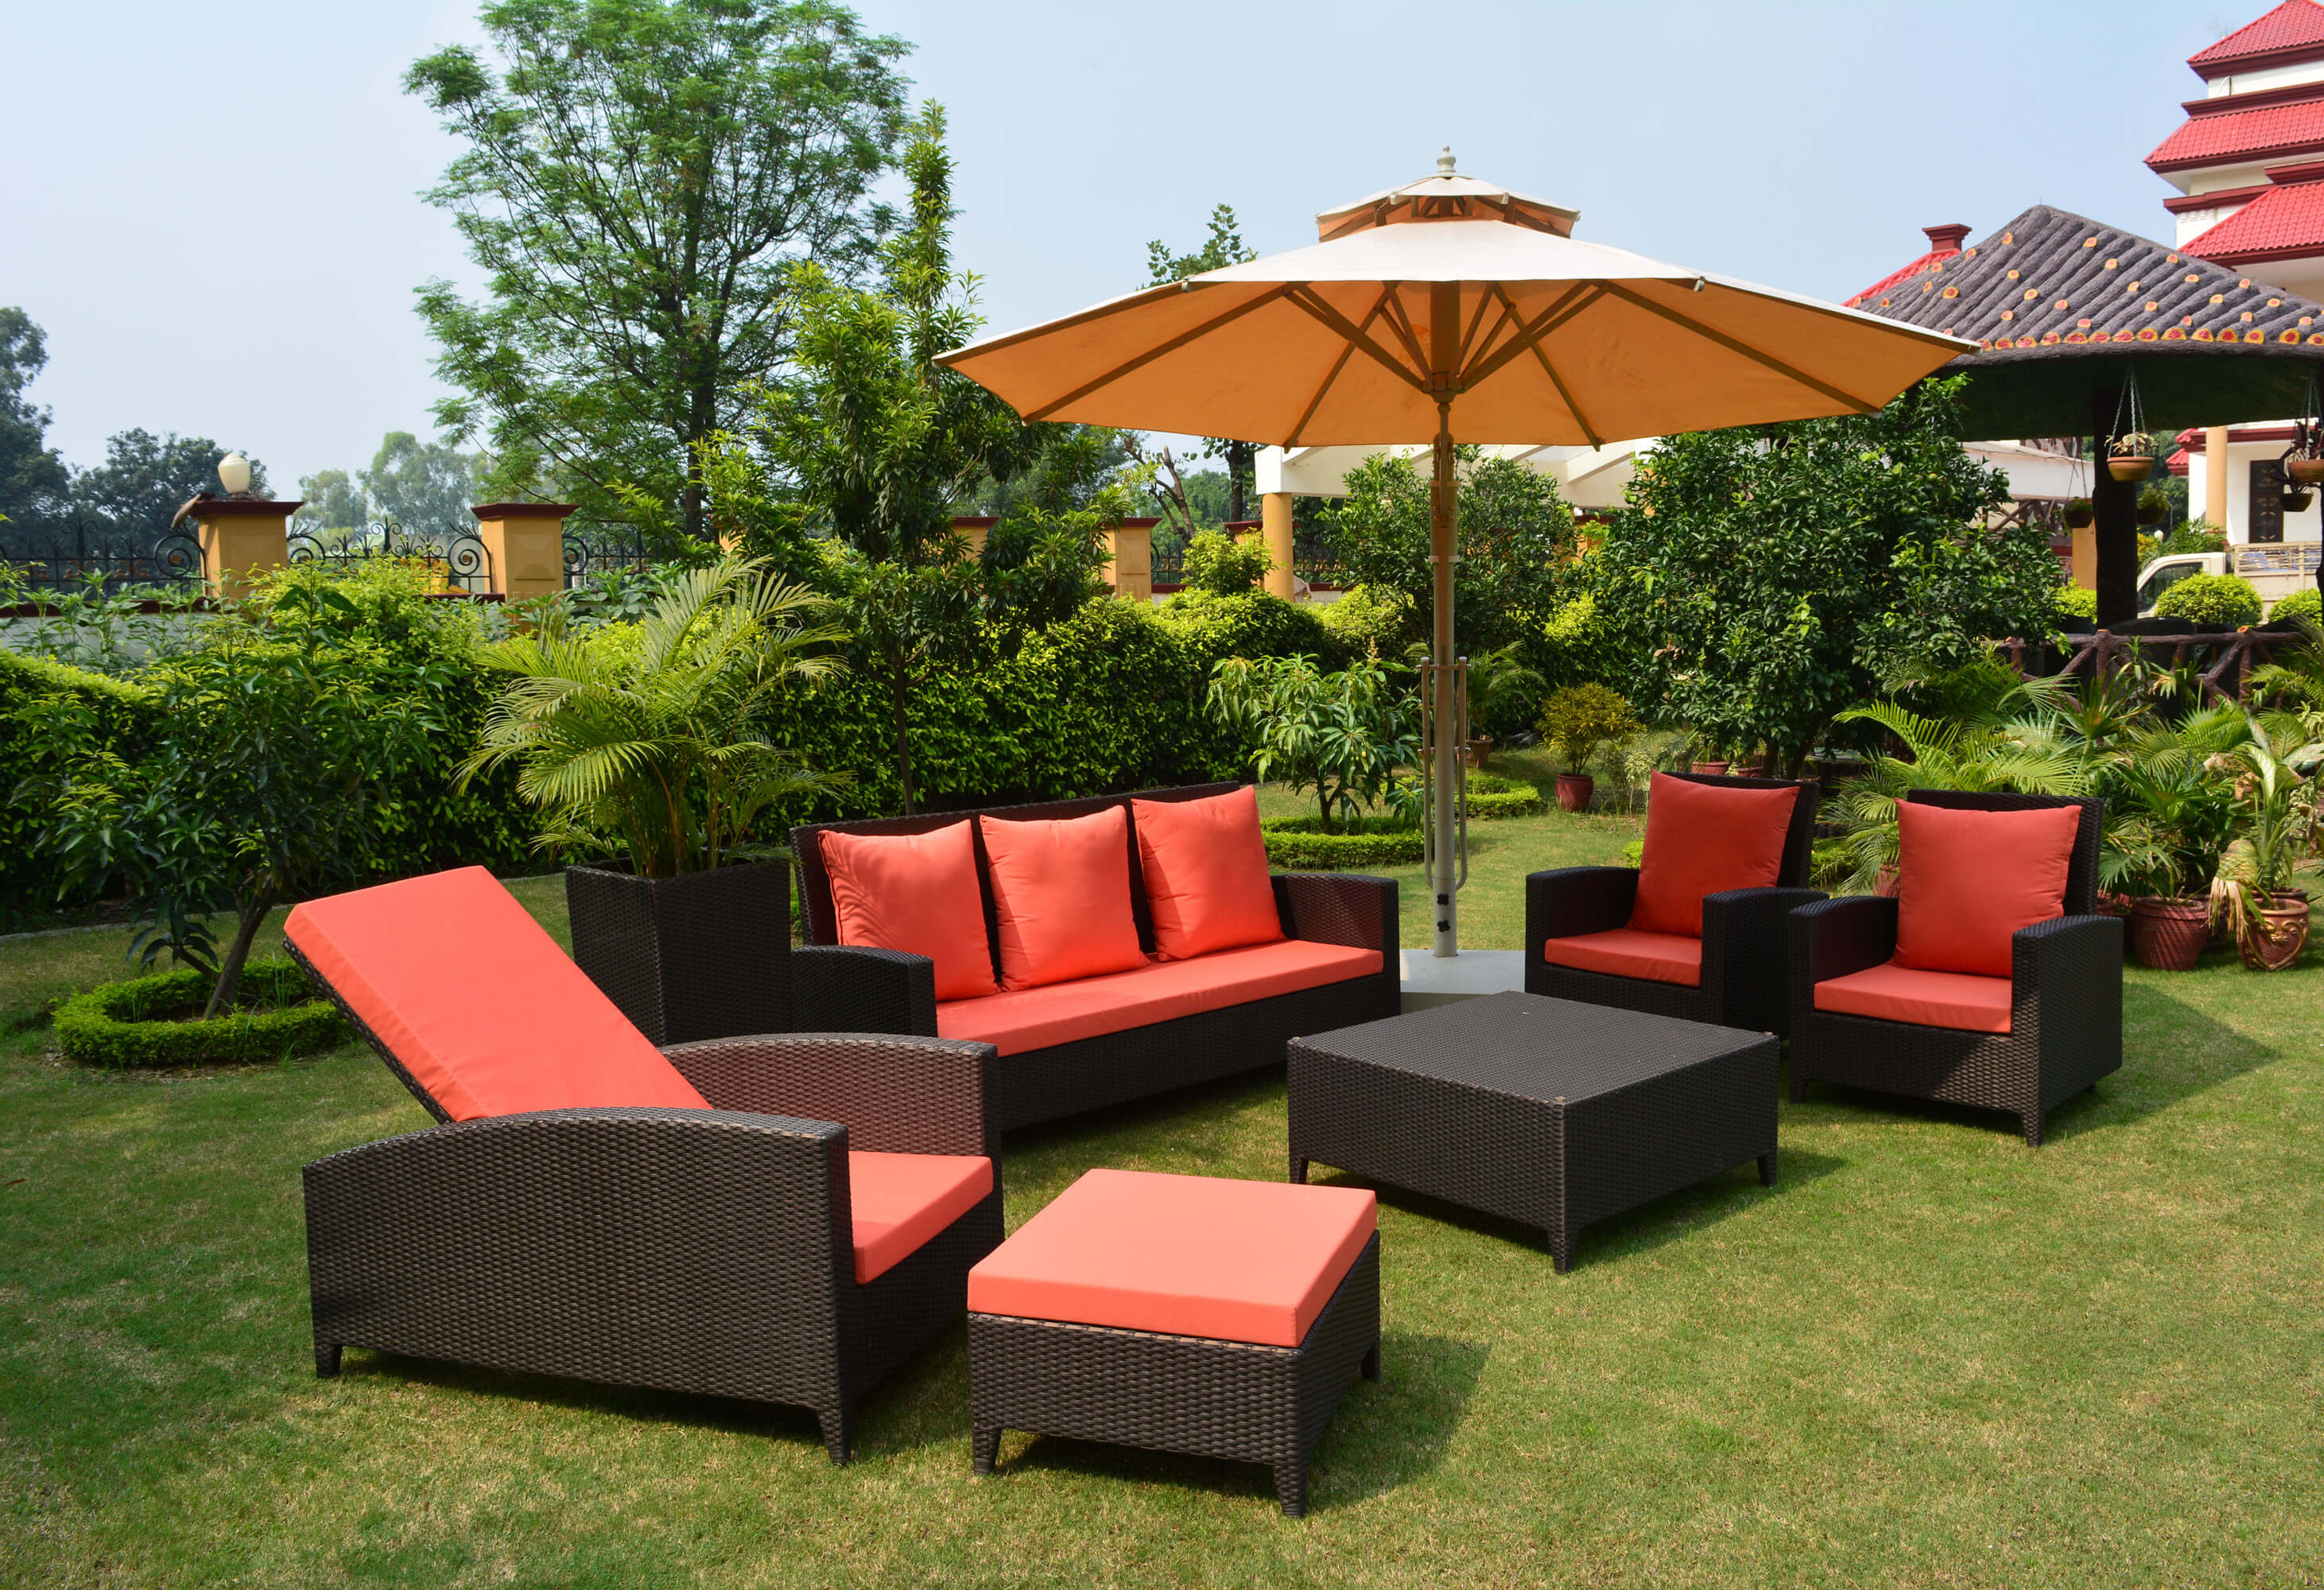 With The Increase Of Outdoor Living Concept, Wicker Furniture Has Gained  Good Traction. Our All Hand Woven Wicker Furniture And Its Fabric Are  Attractive In ...